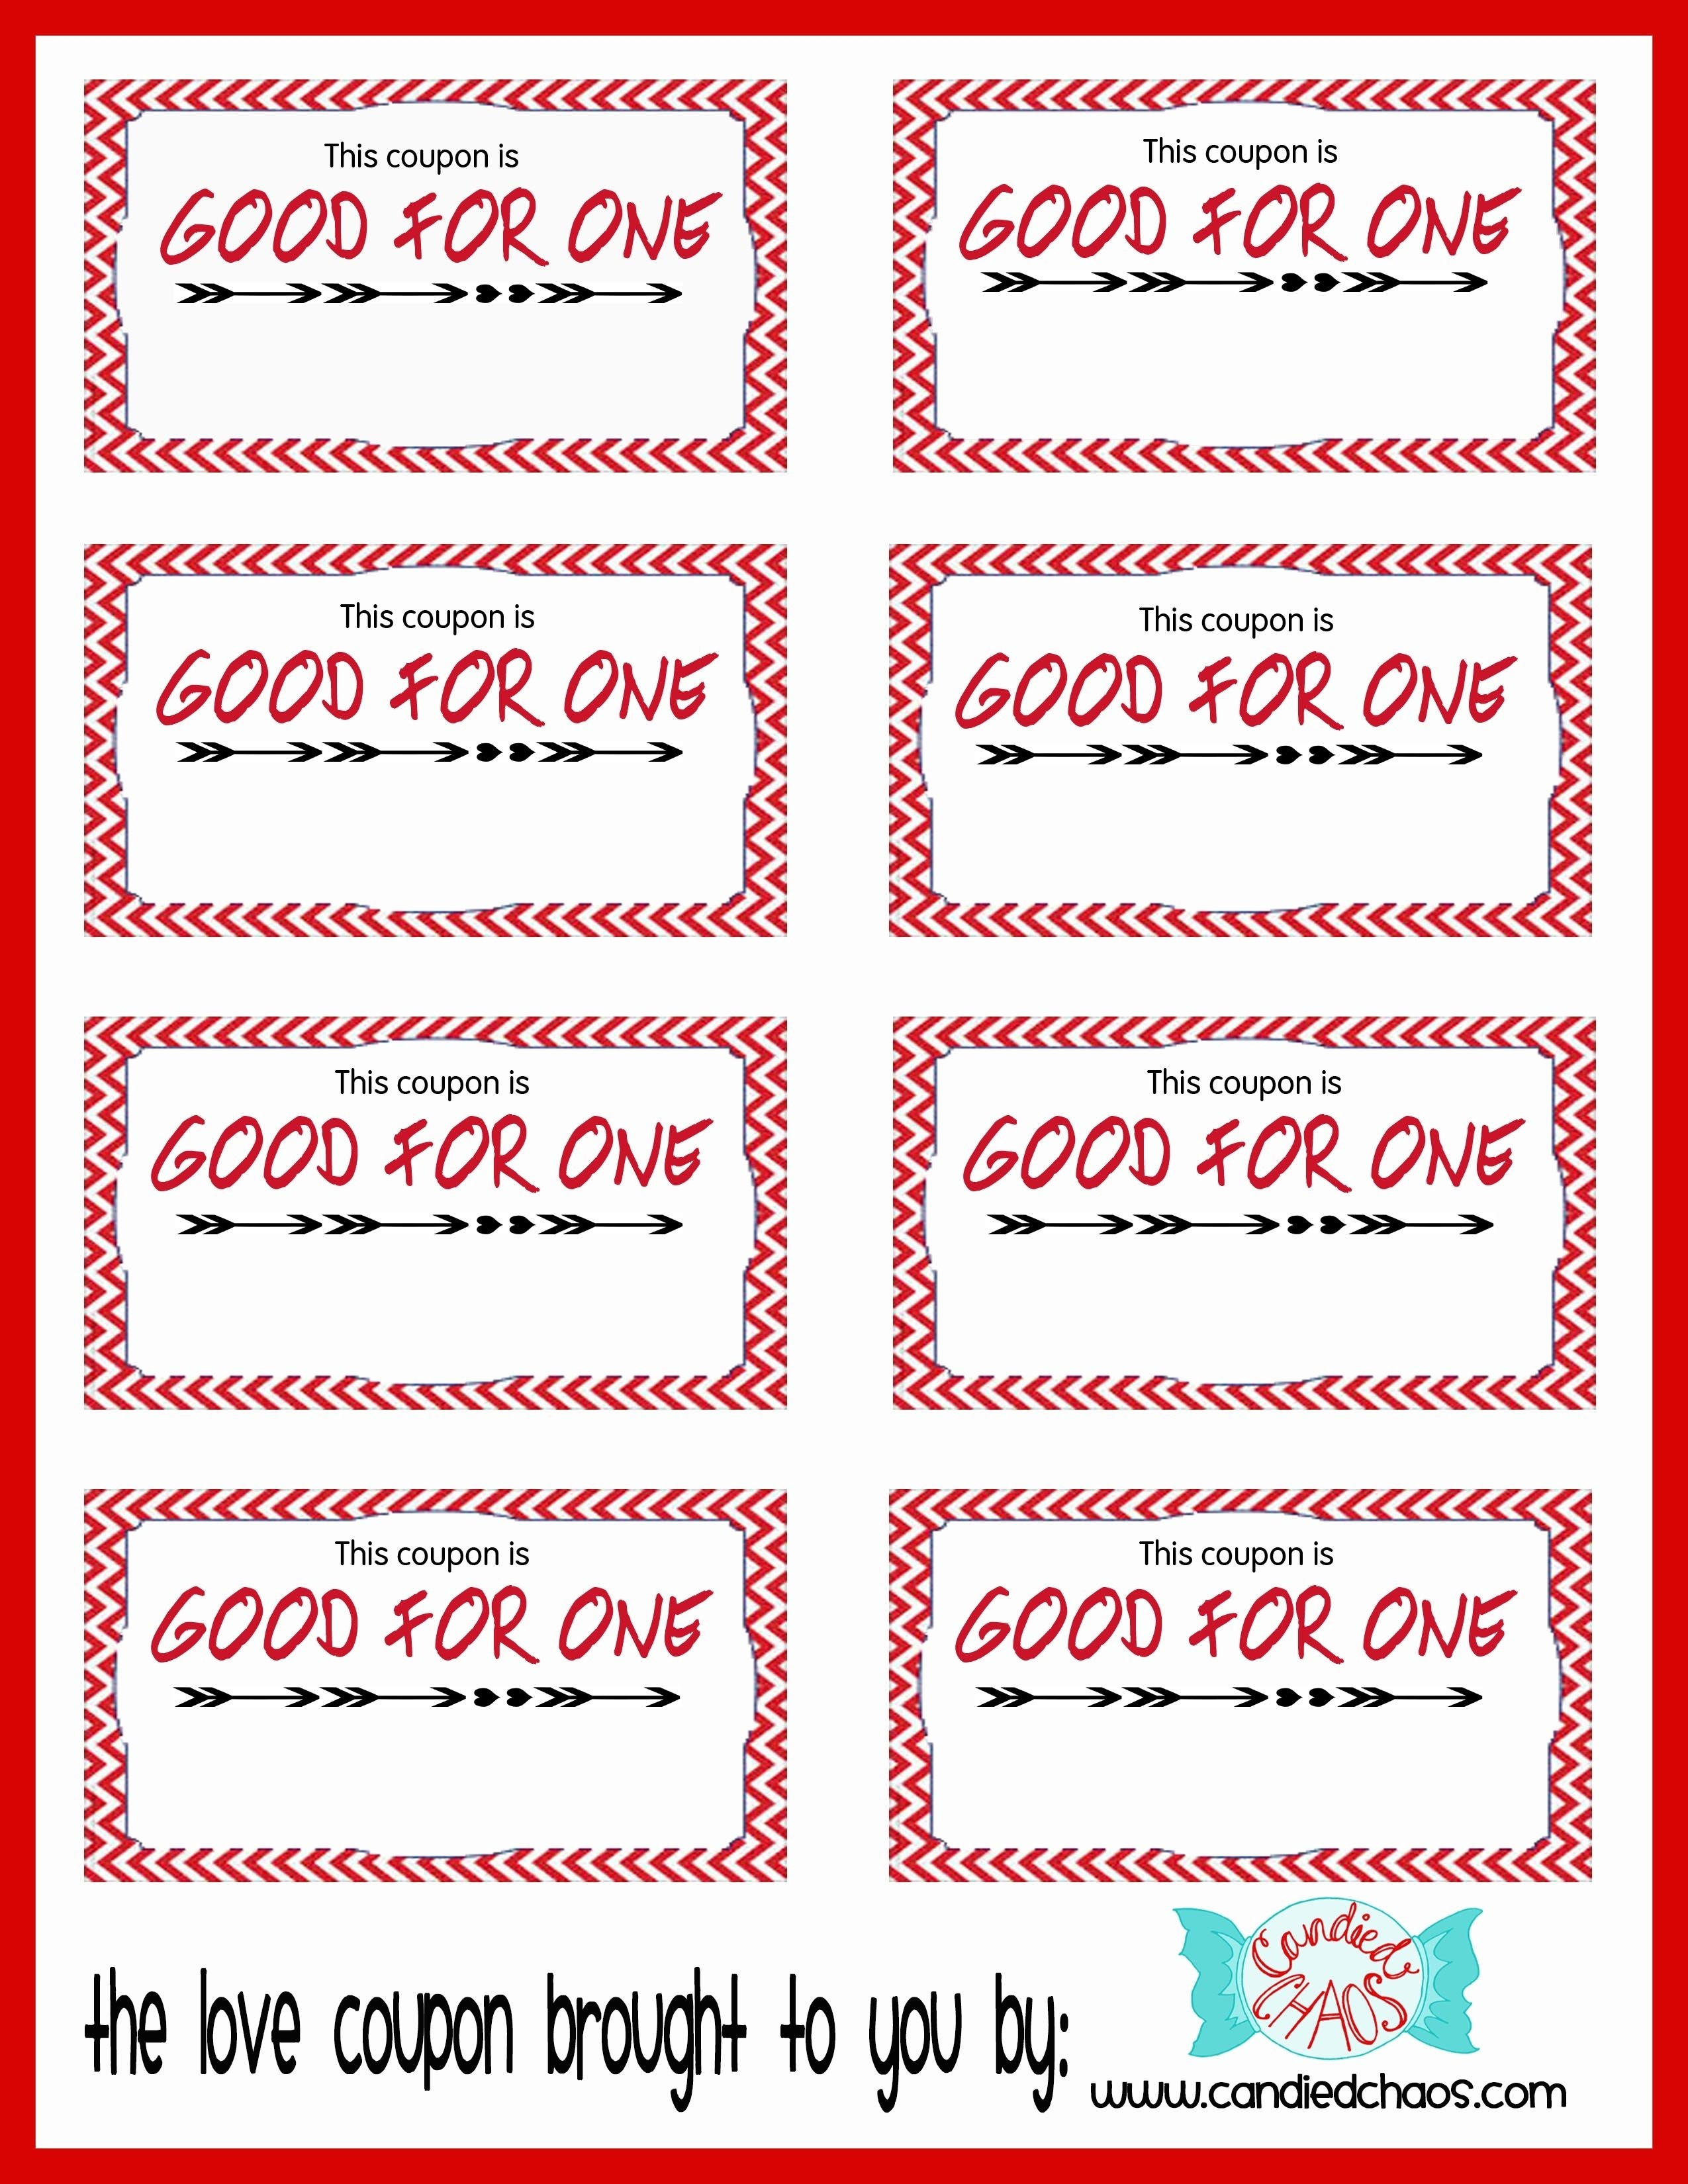 10 attractive valentines coupon book ideas for him i will be honest valentines day isnt really